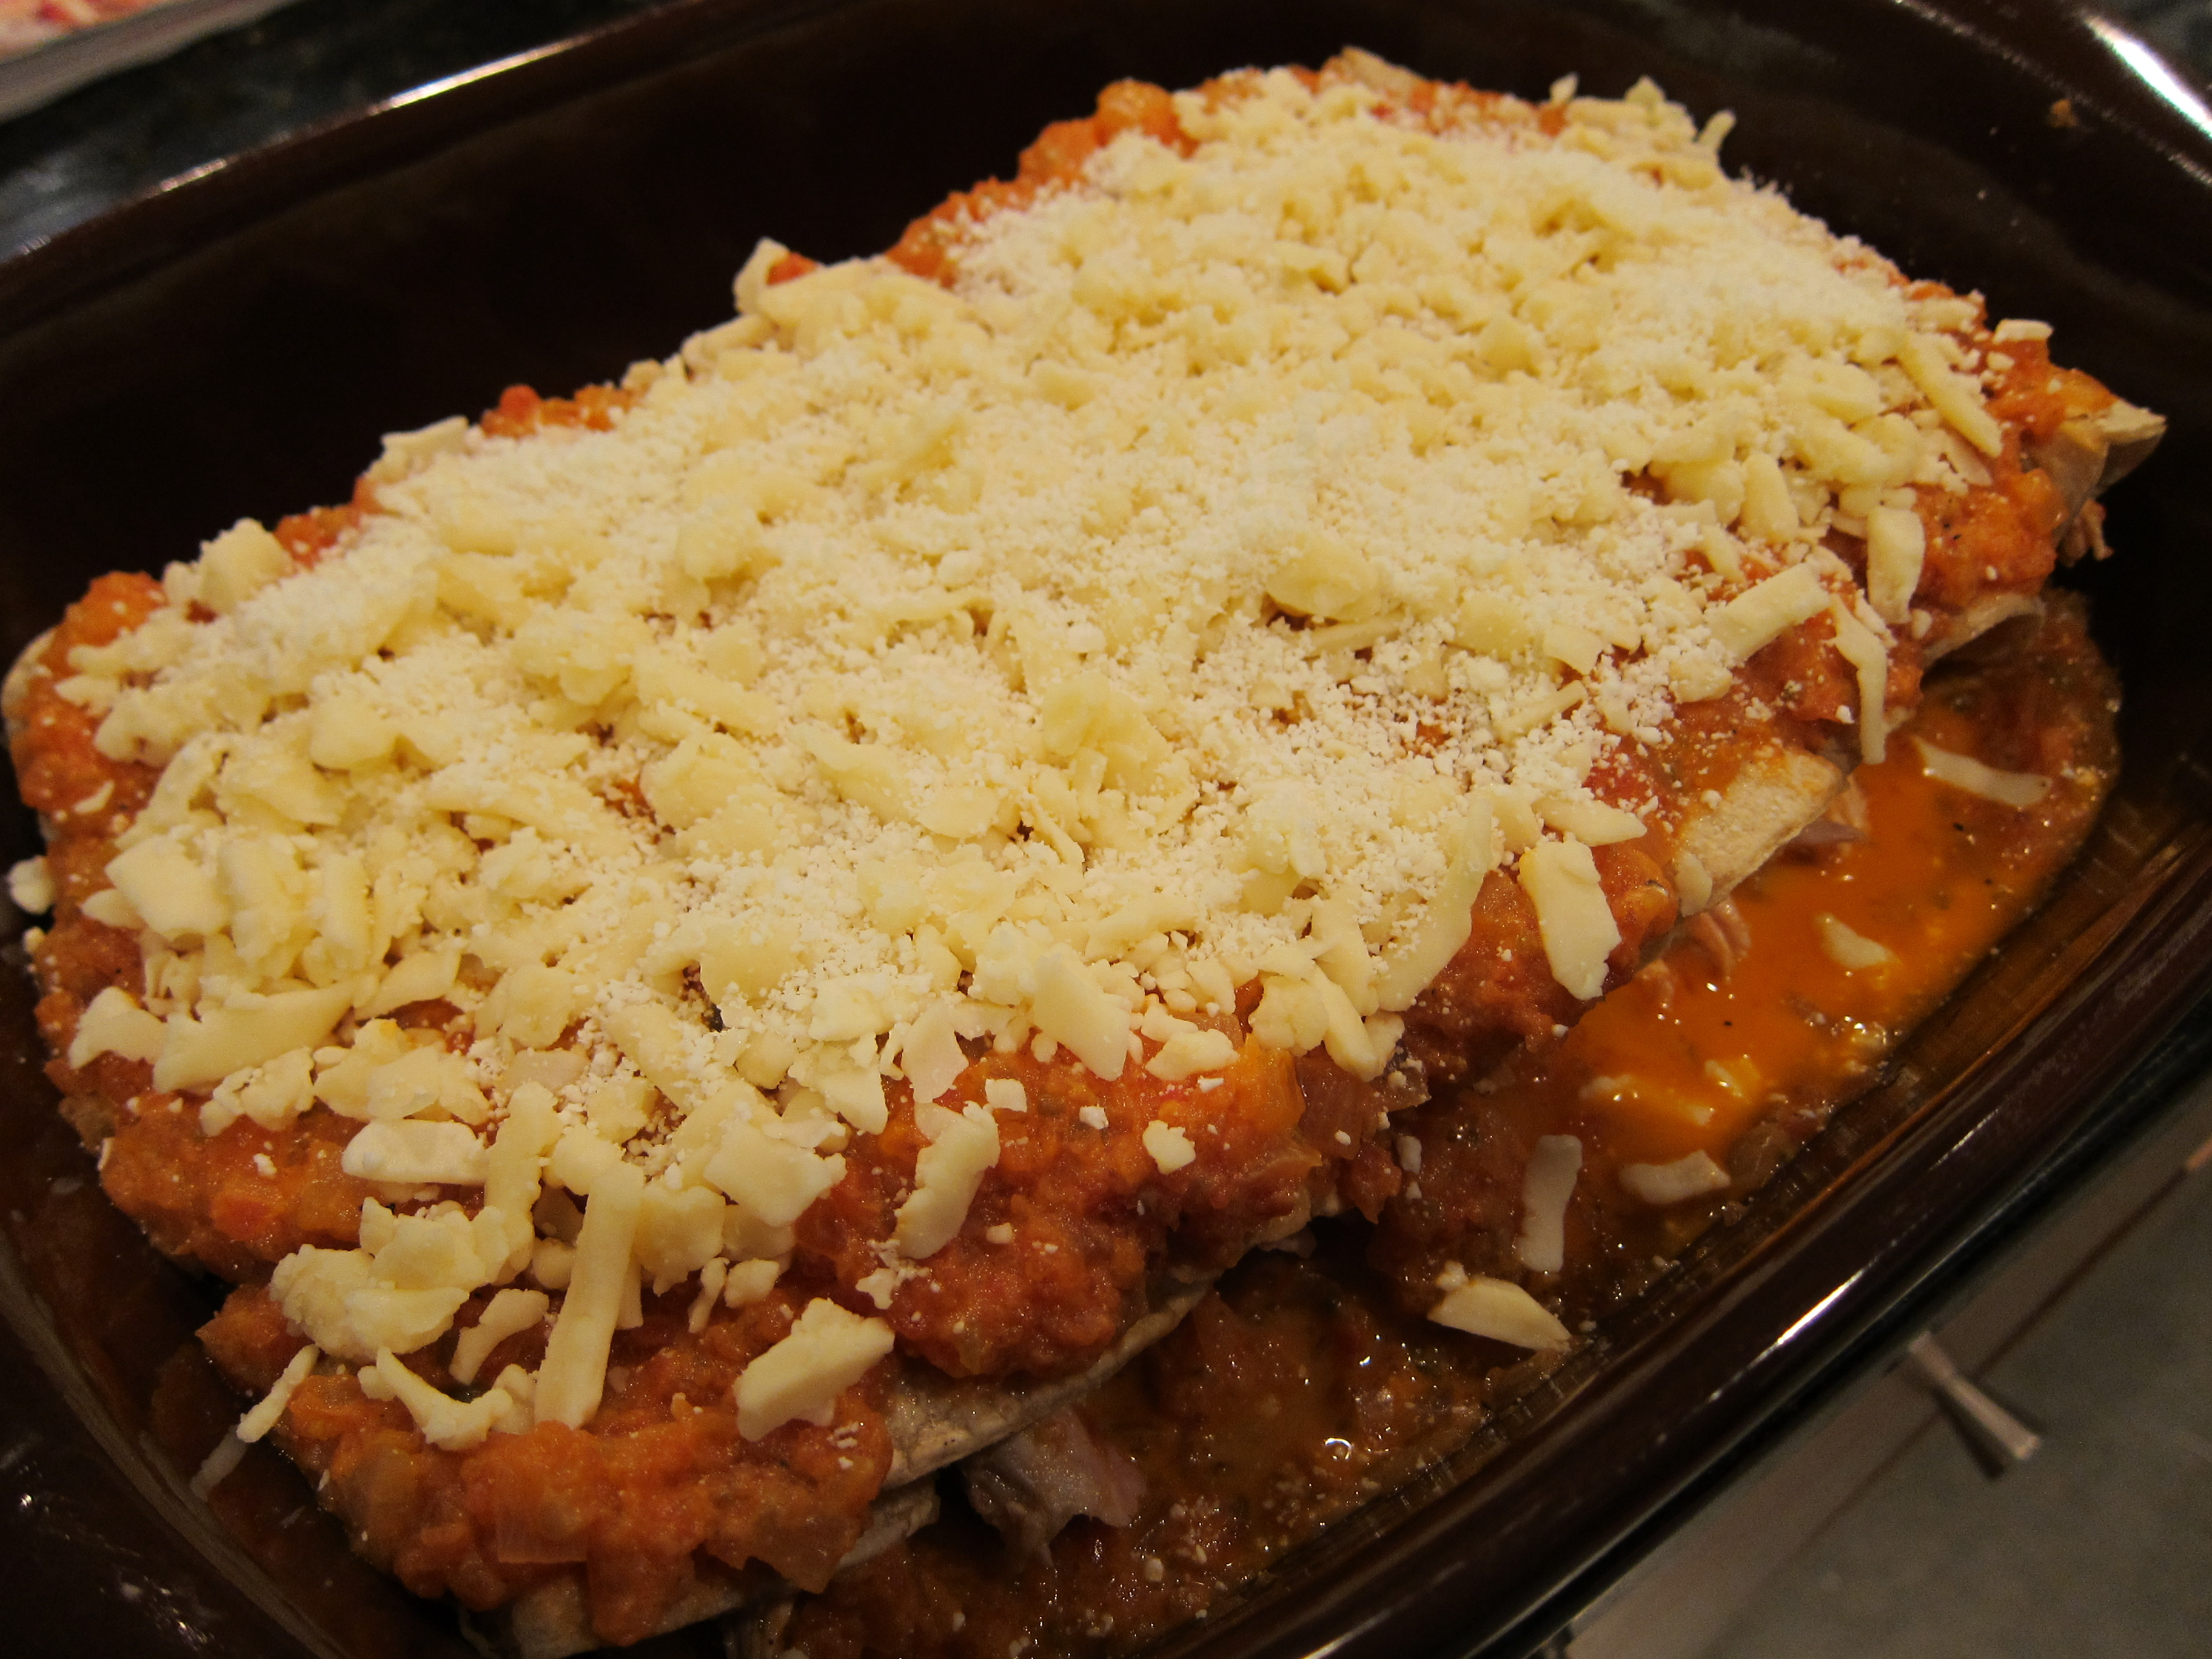 Enchiladas Suizas with MExican cheese